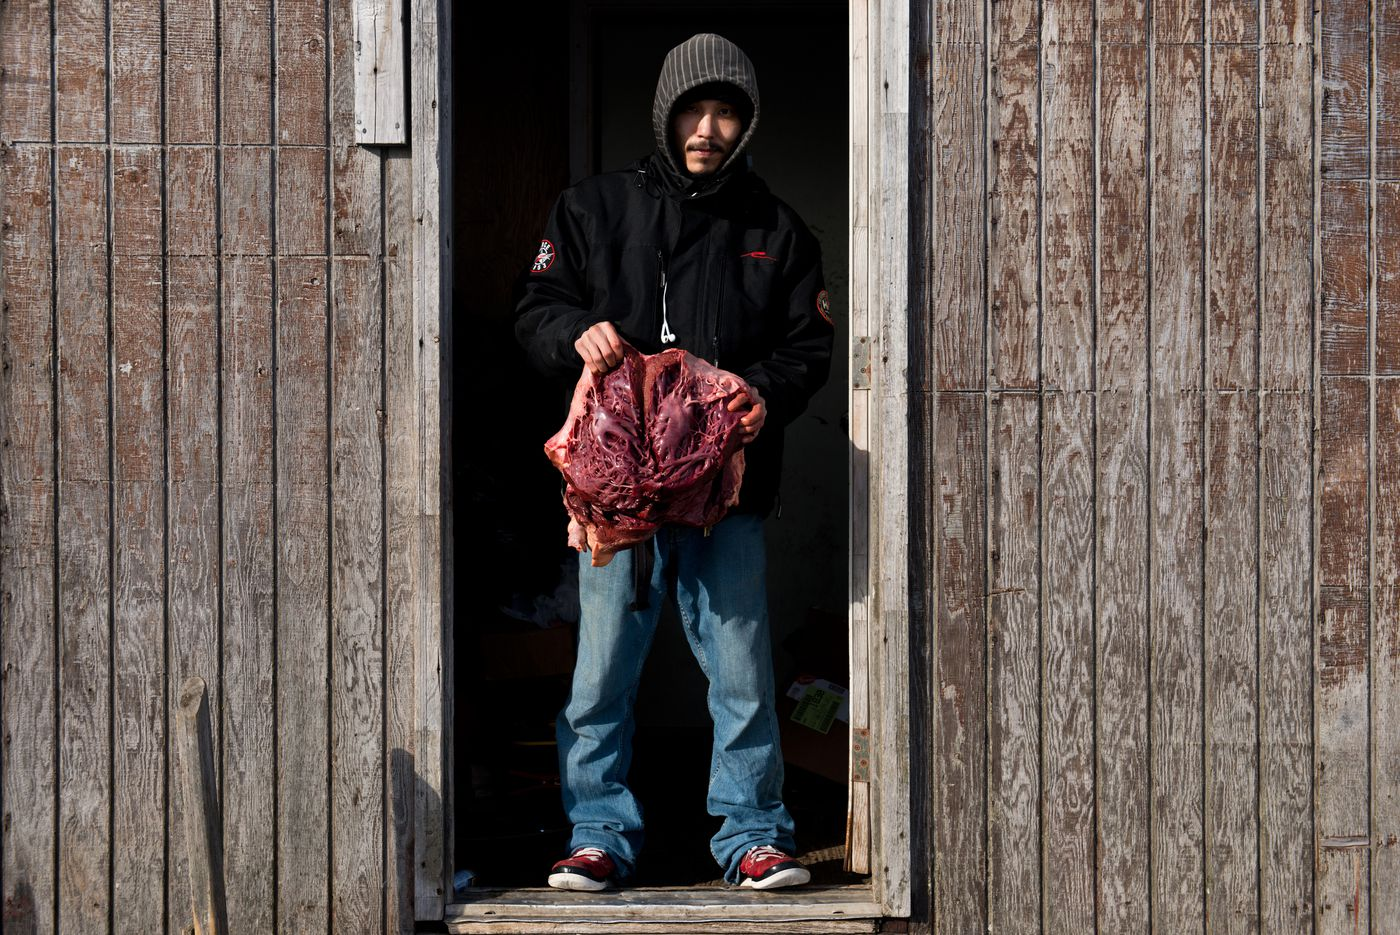 Felix Wongittilin holds a walrus heart in the entry to his Savoonga home last month. Walrus meat, blubber and heart are all foods that many in the village rely on. (Marc Lester / Alaska Dispatch News)